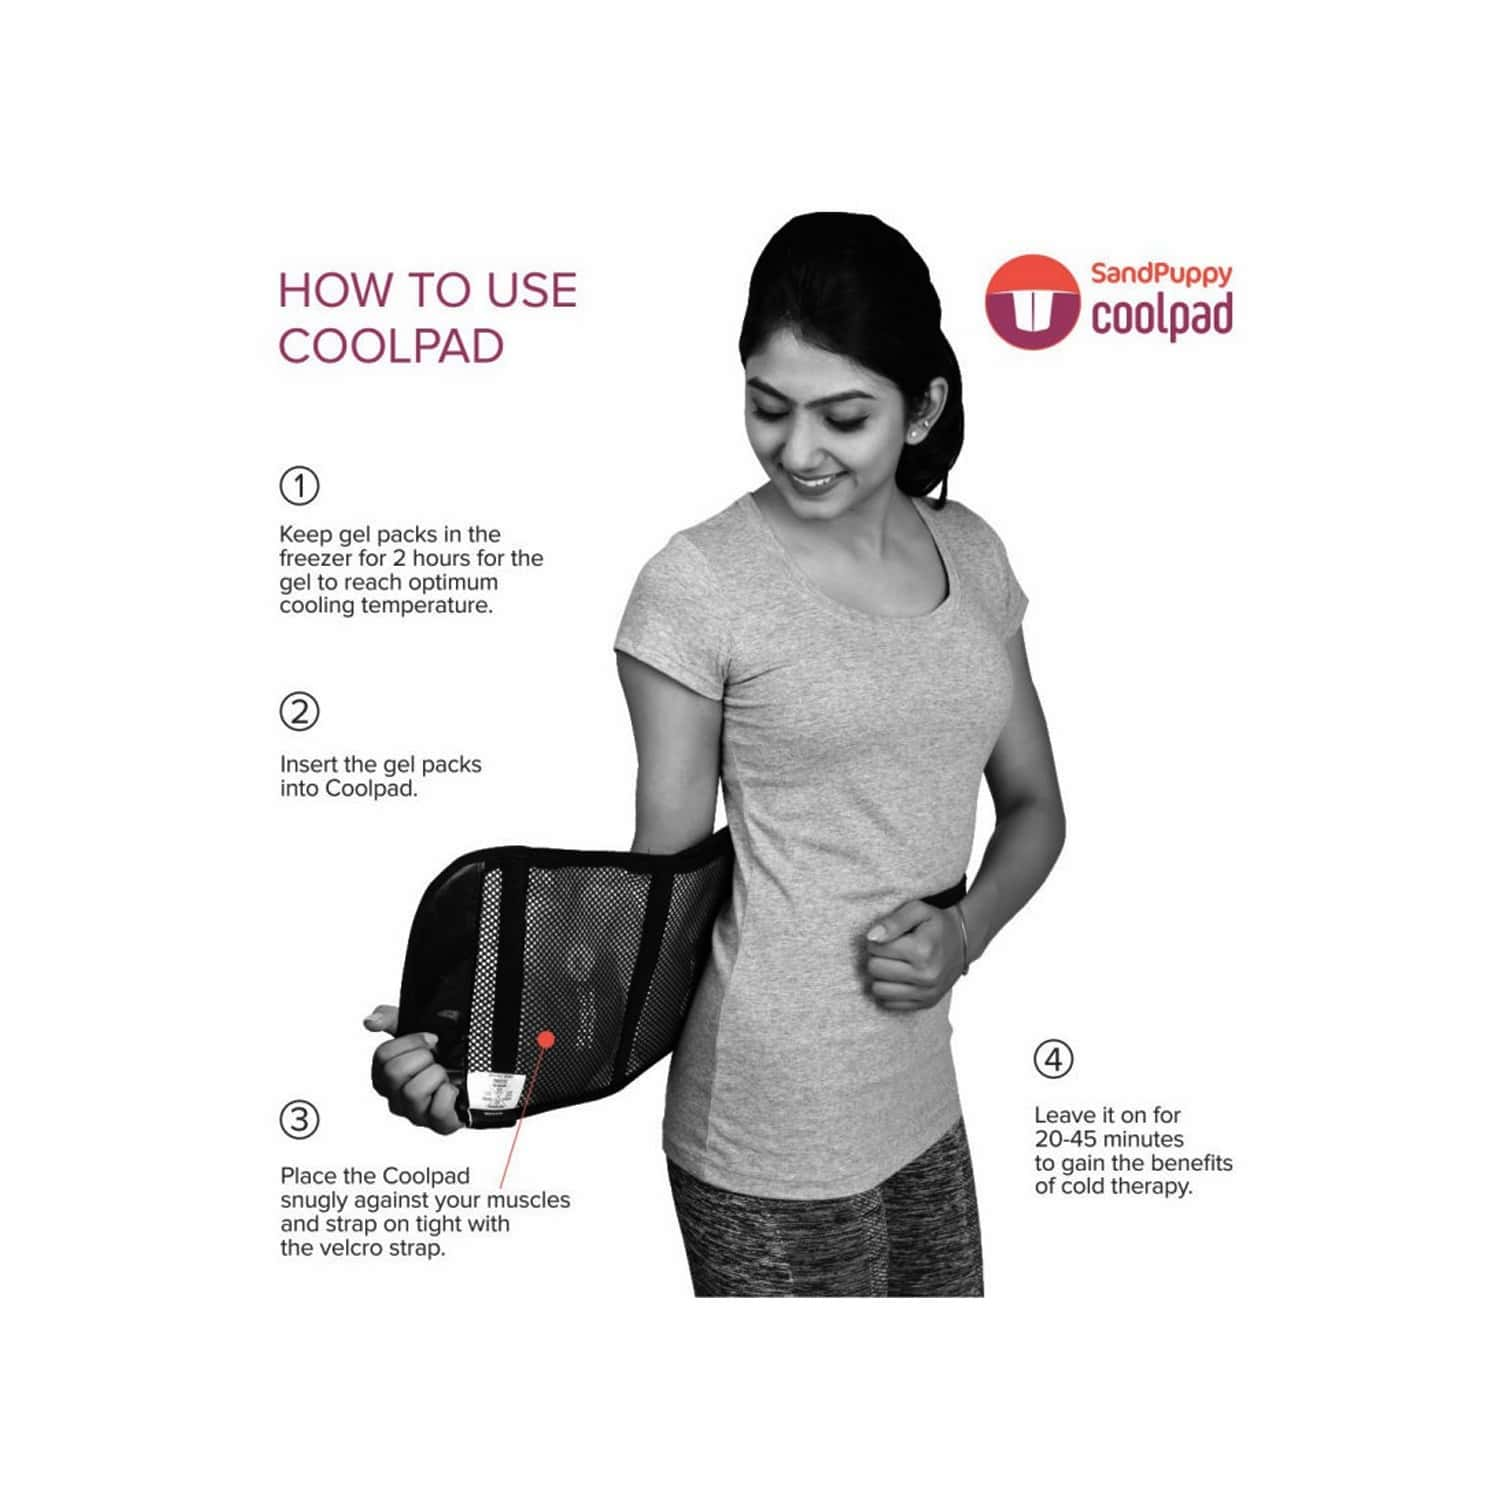 Sandpuppy Coolpad - Cool Pack/ice Gel Pack For First Aid Sports Injury Pain Relief Cold Therapy